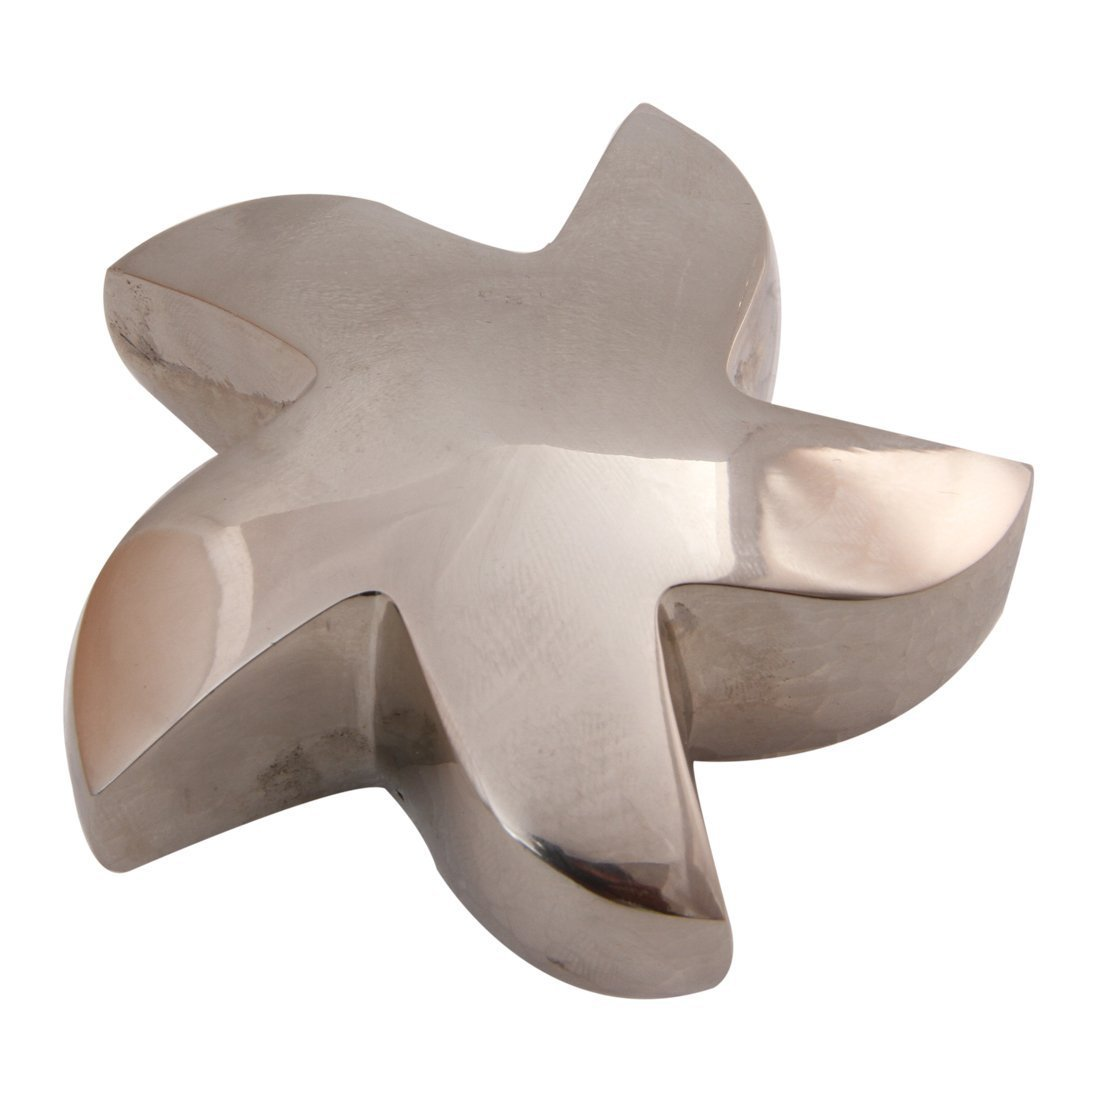 Bright Silver Star Keepsake Funeral Urn for Human Ashes, Unique Star Cremation Urn